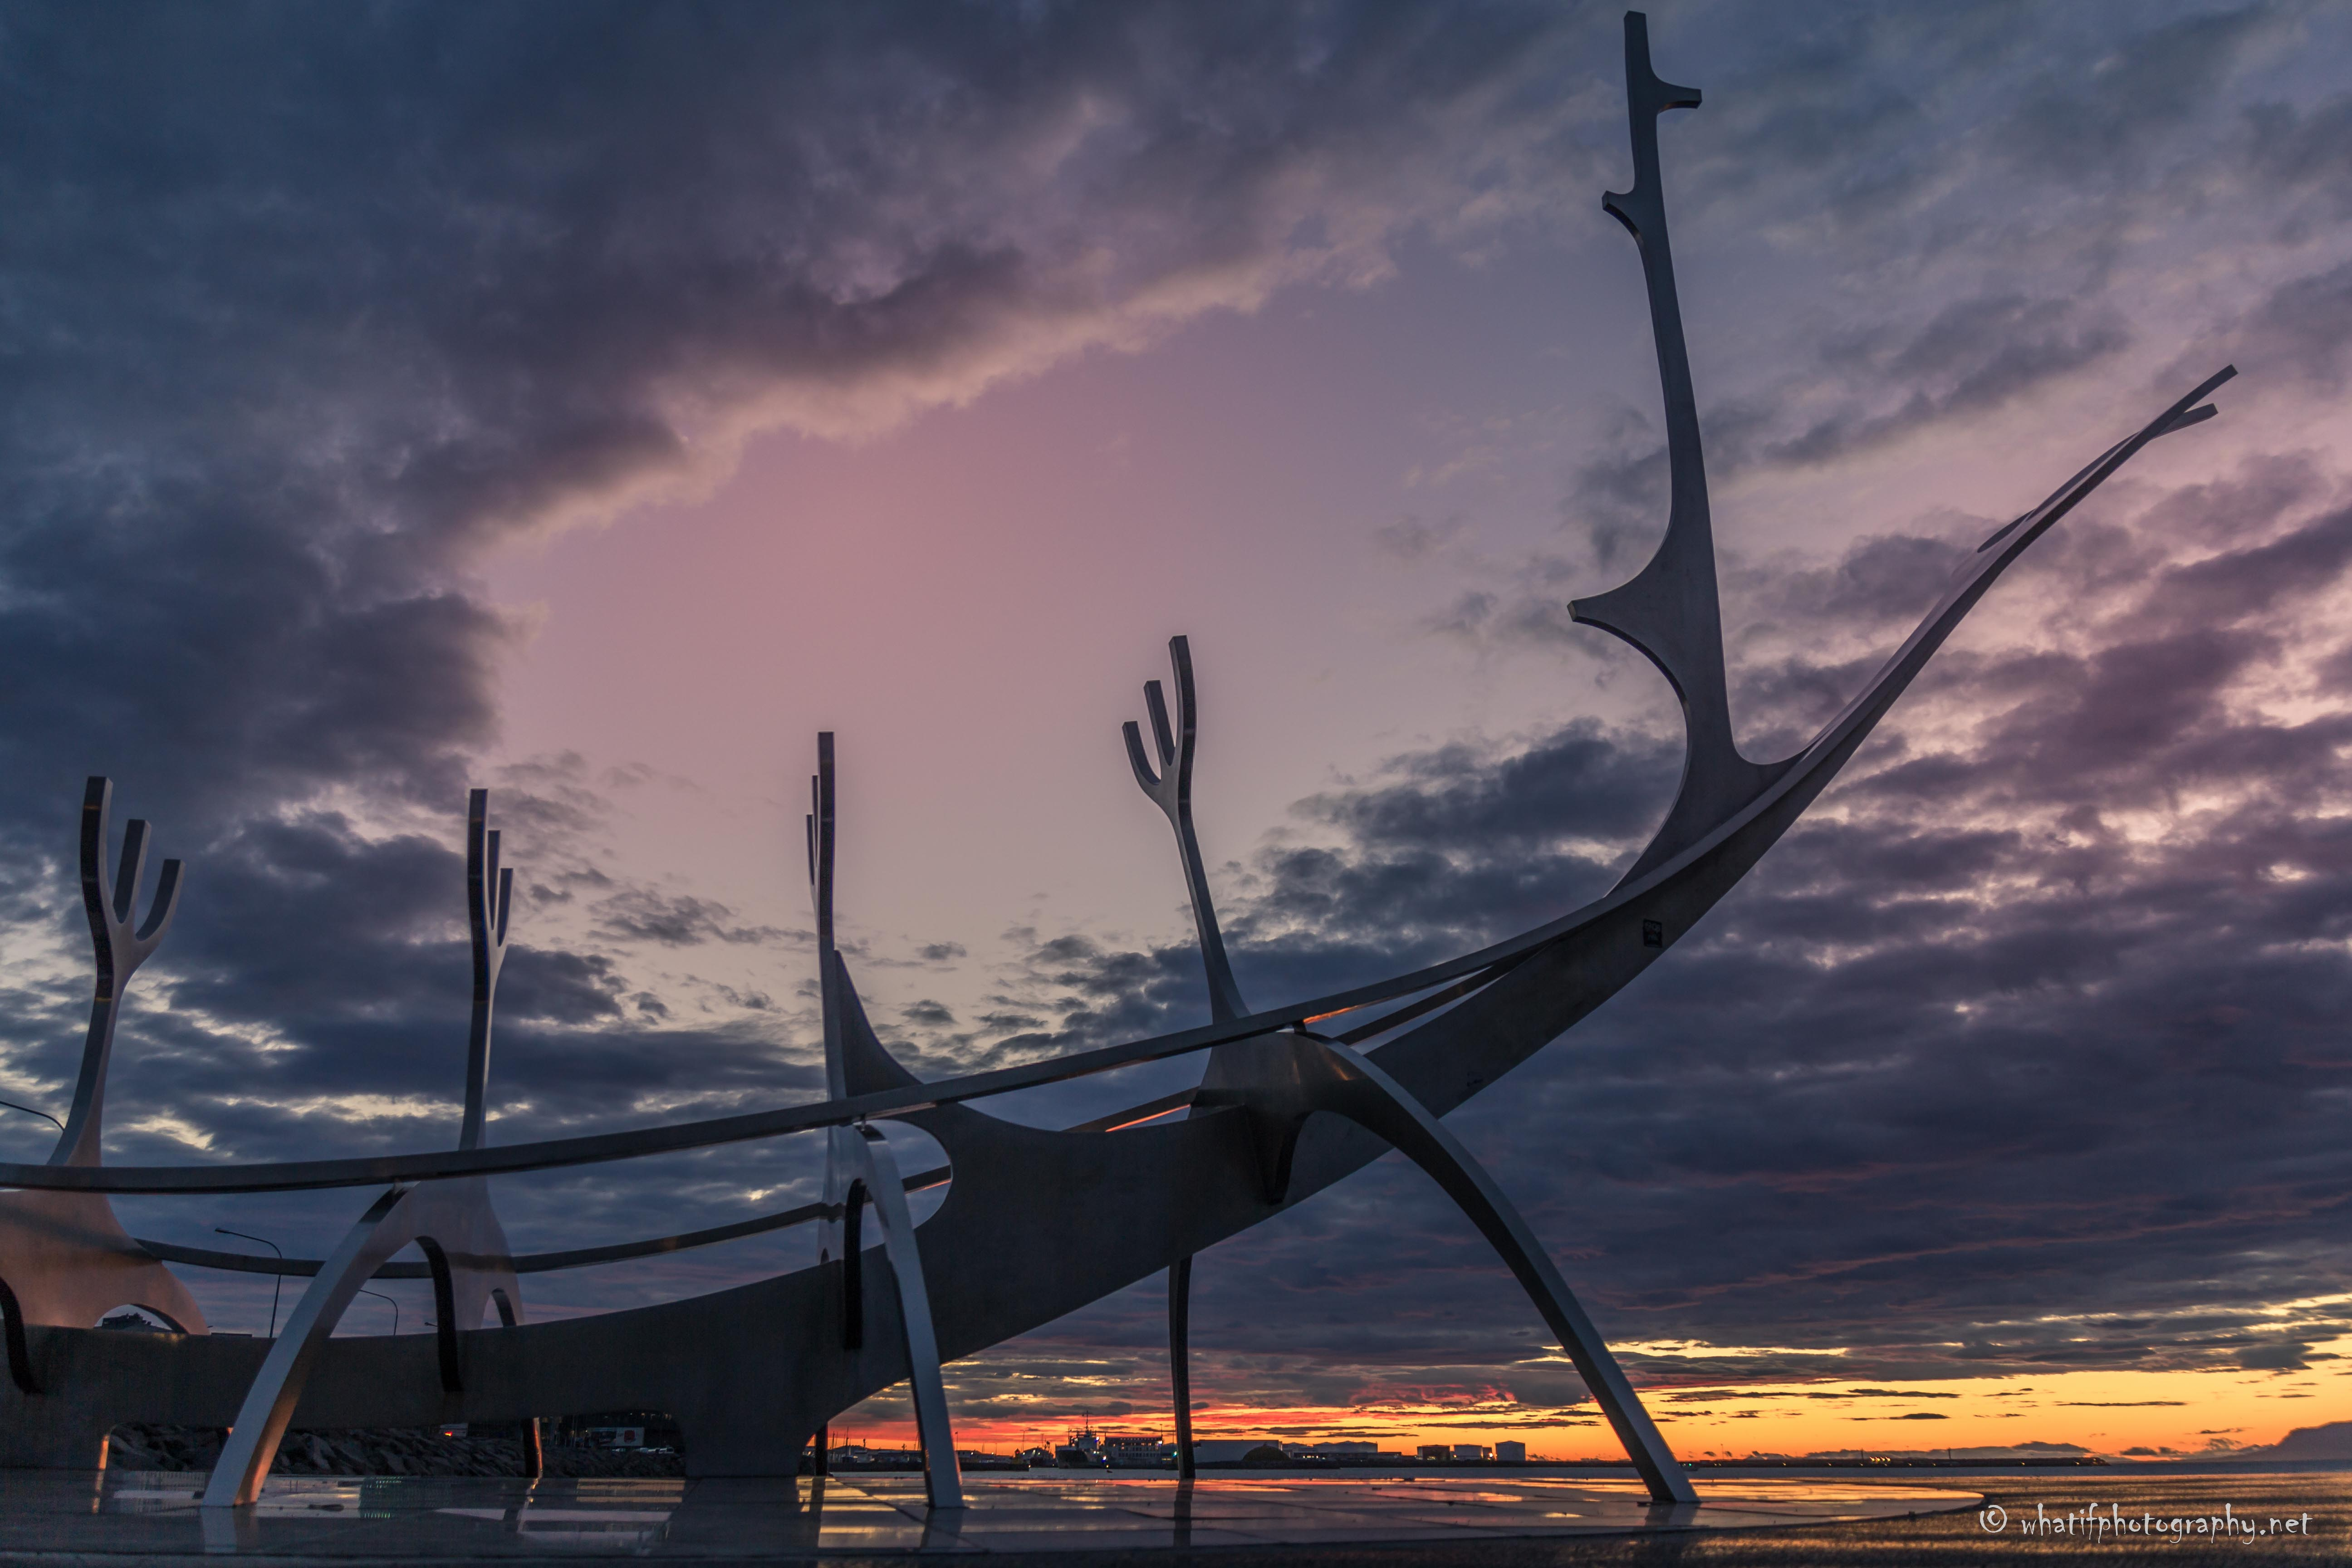 The Sun Voyager by sunset, Reykjavik, Ic